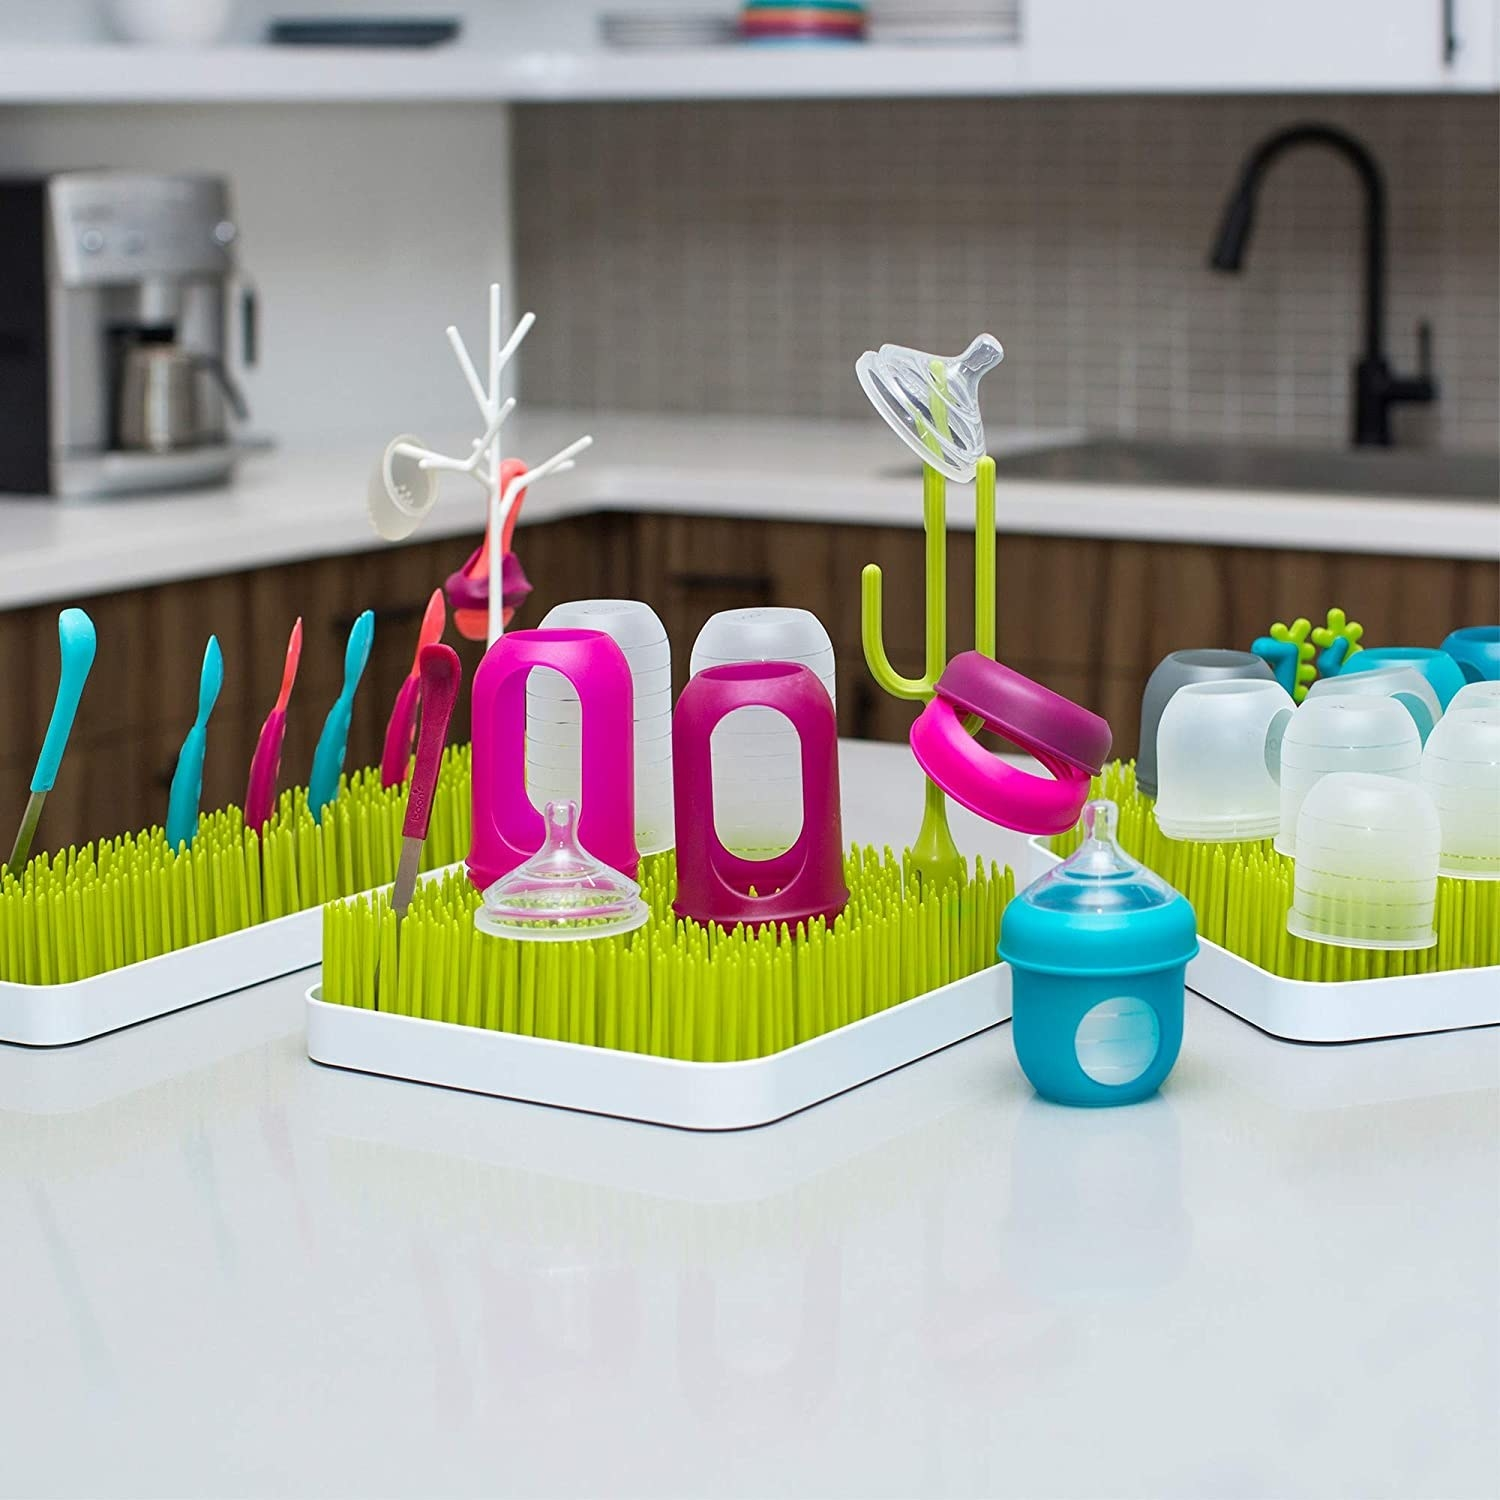 The drying racks on a kitchen counter with baby bottles perched on top of the grassy nodes